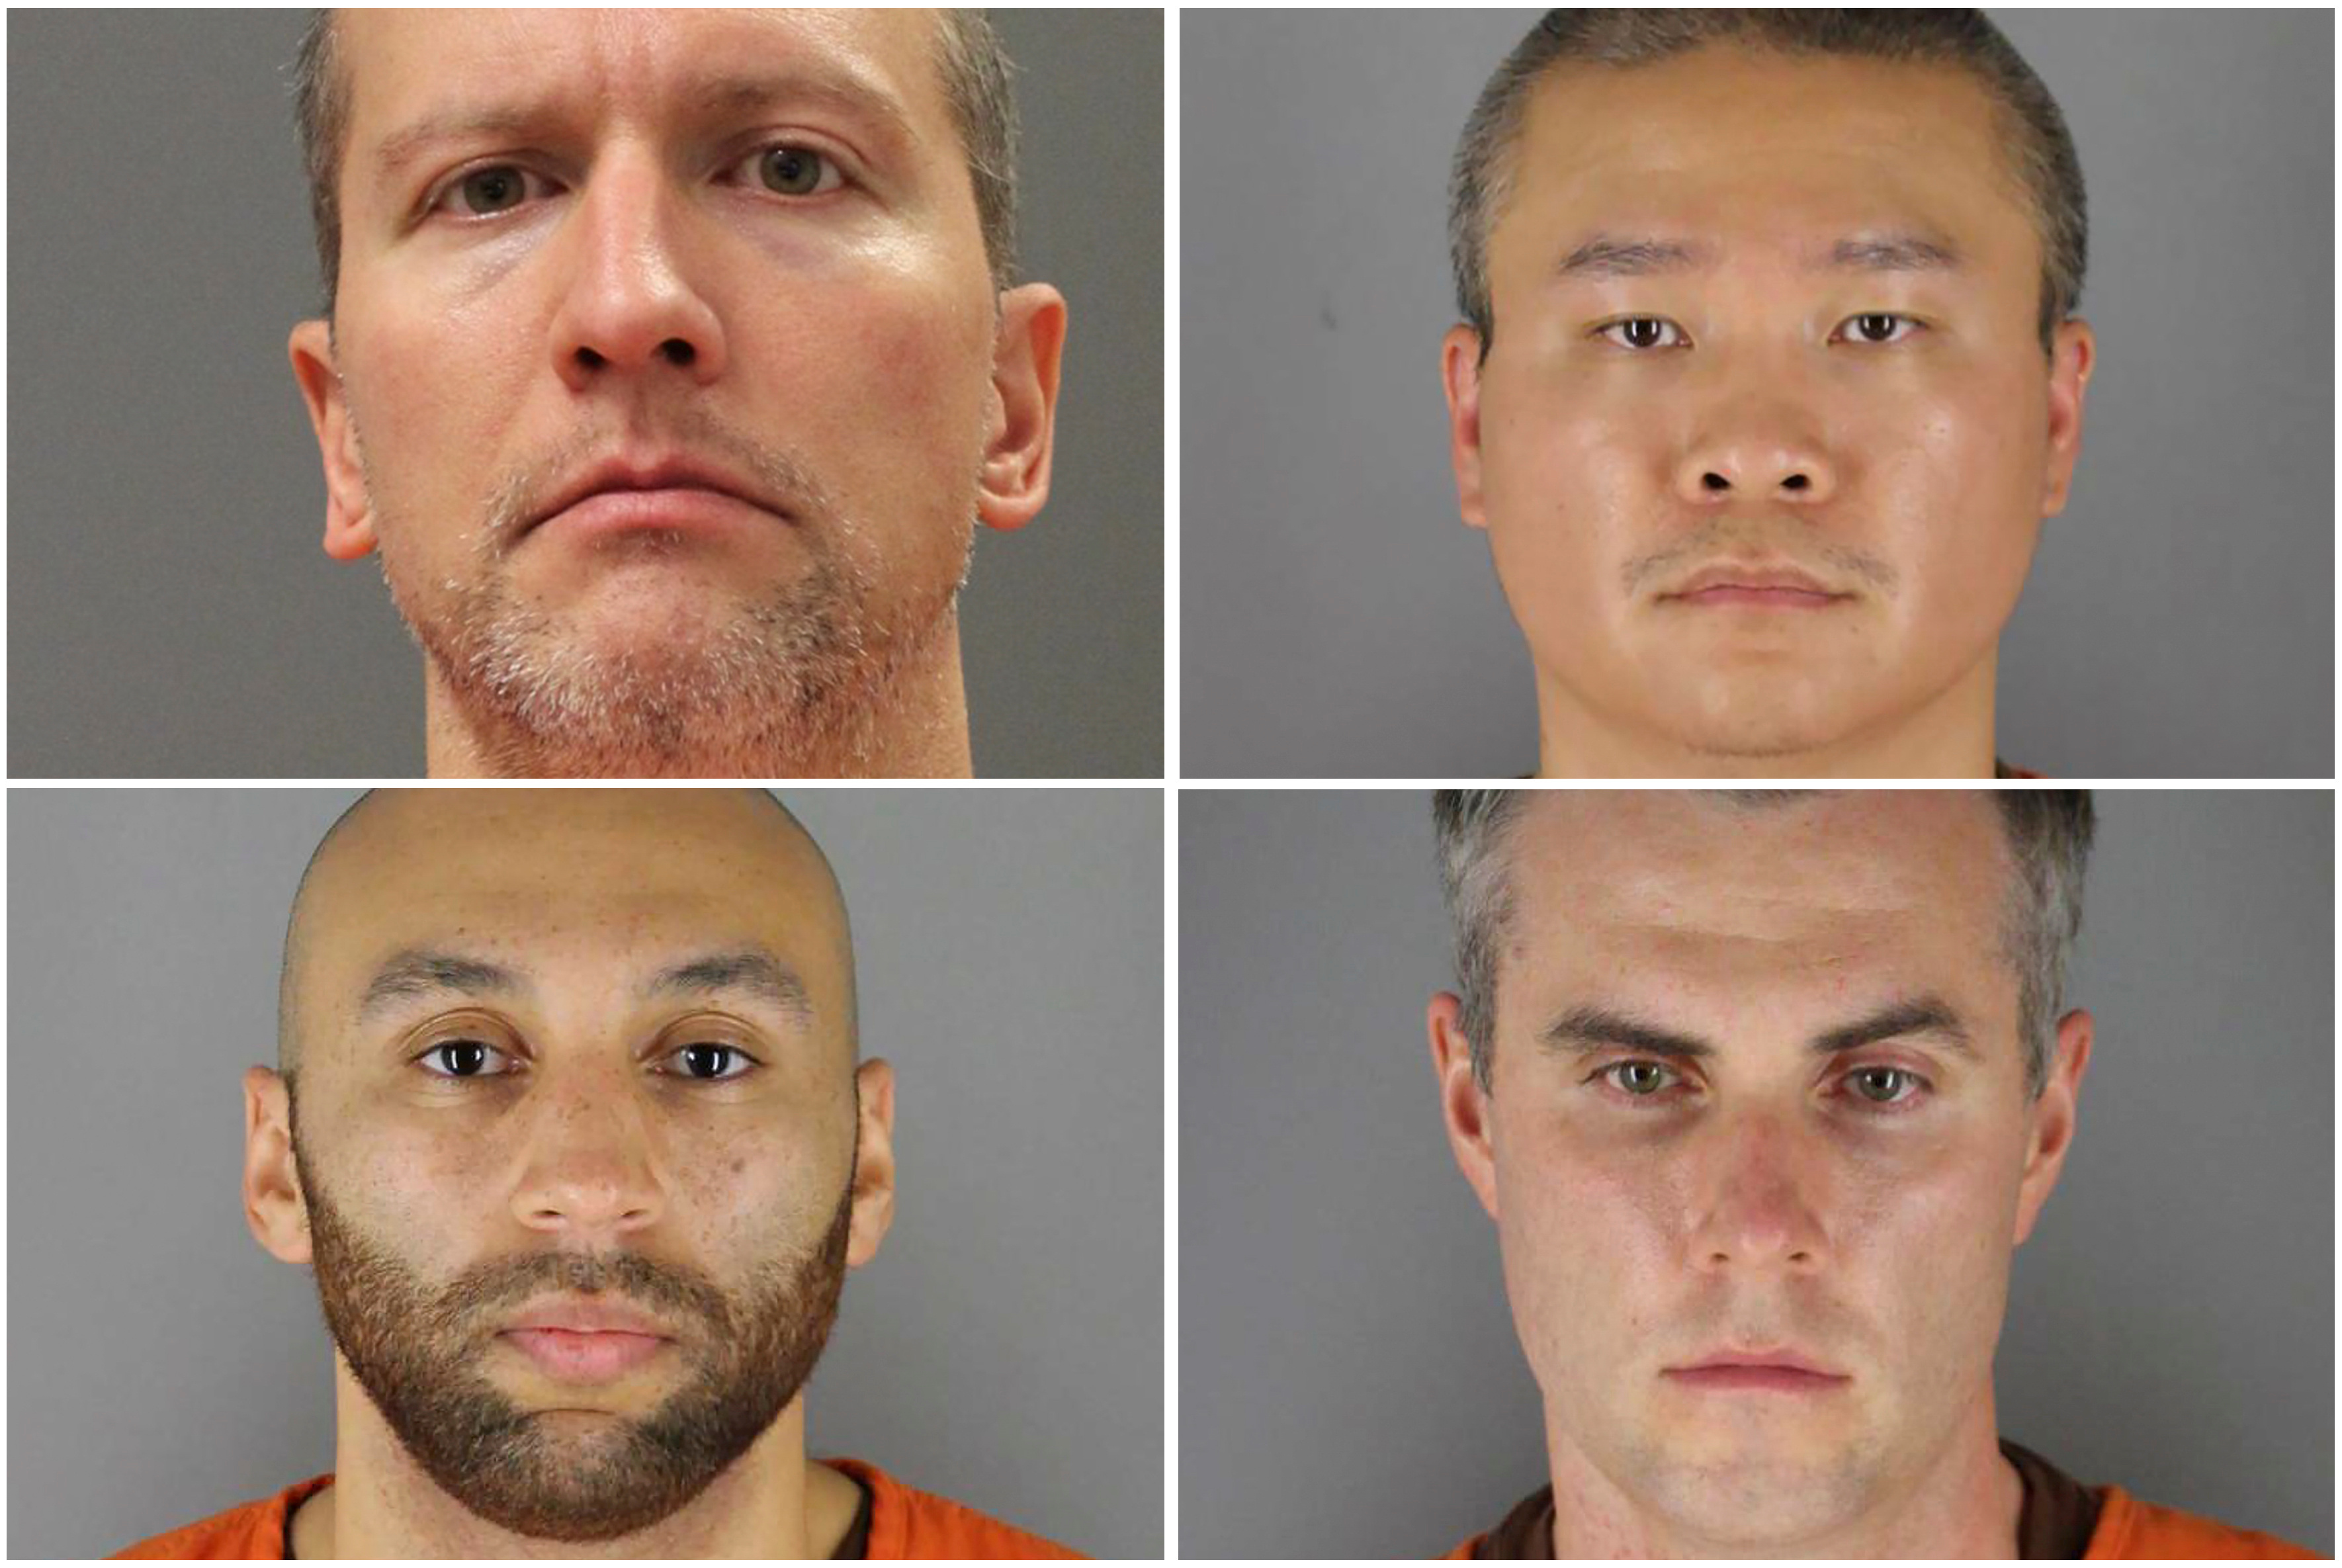 Former Minneapolis police officers (clockwise from top left) Derek Chauvin, Tou Thao, Thomas Lane and J. Alexander Kueng pose in a combination of booking photographs from the Minnesota Department of Corrections and Hennepin County Jail in Minneapolis, Minnesota, U.S.  Minnesota Department of Corrections and Hennepin County Sheriff's Office/Handout via REUTERS.